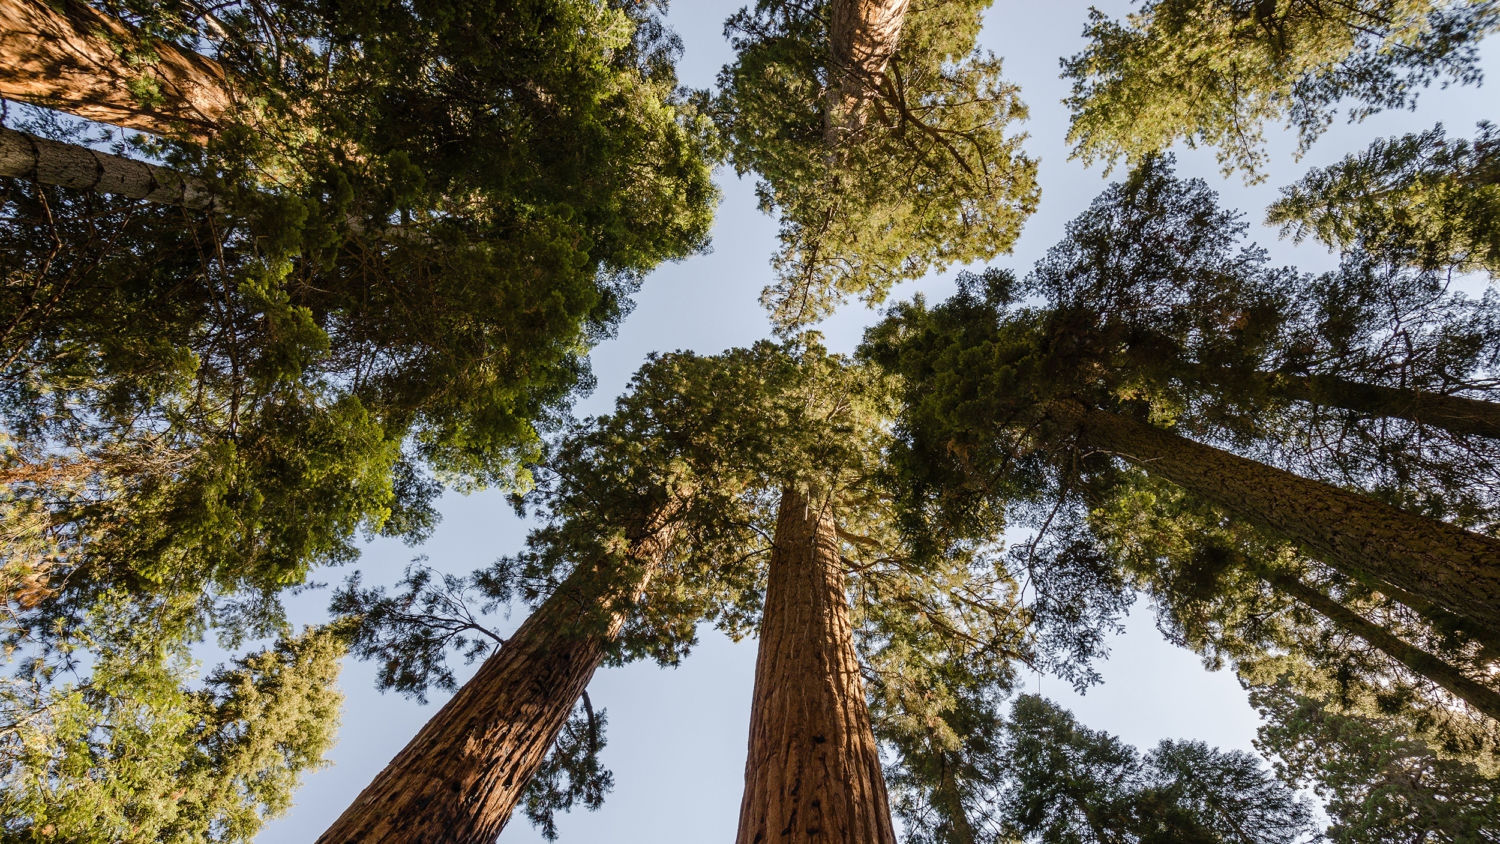 sequoia national park asian personals Sequoia national park is adjacent to kings canyon national park in asian singles single asian professionals single professionals young professional singles.